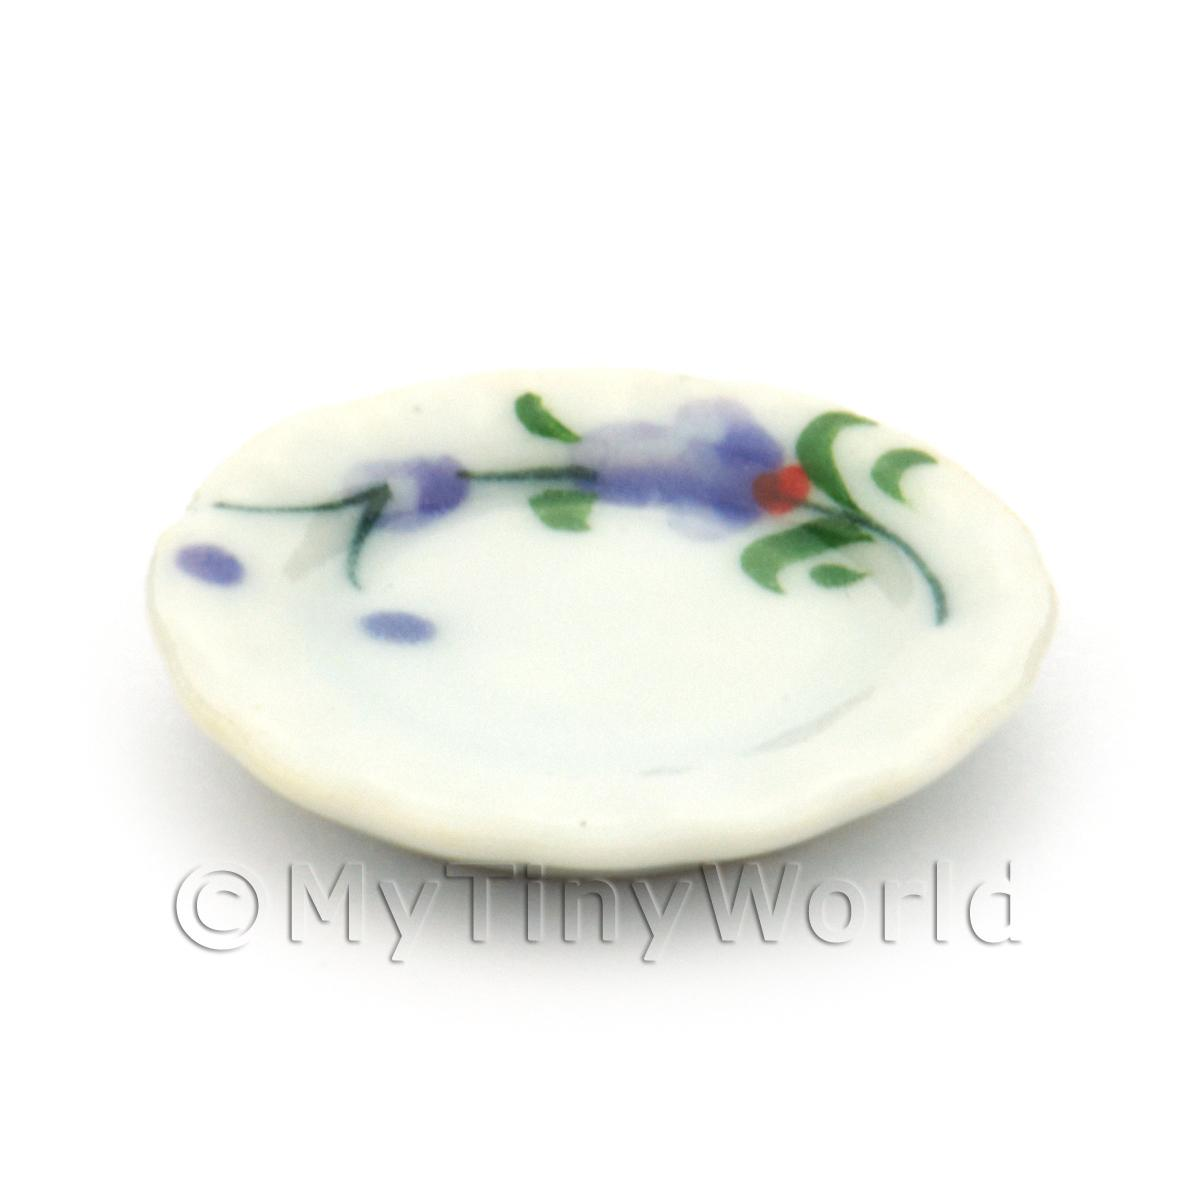 Dolls House Miniature Purple Orchid Design Ceramic 20mm Fluted Plate